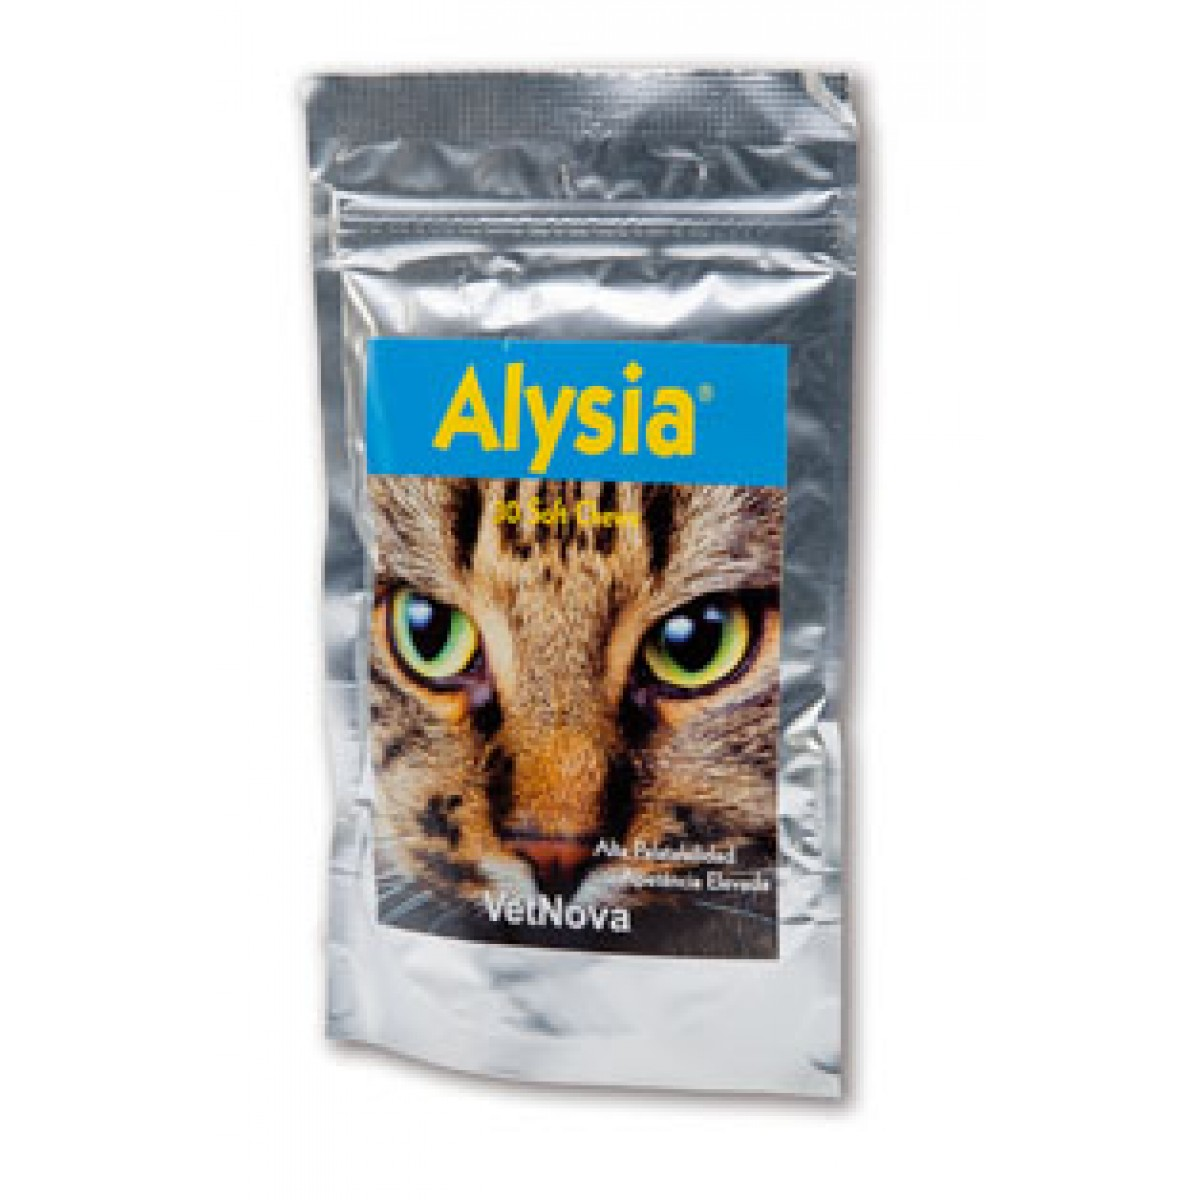 ALYSIA 30 Soft Chews